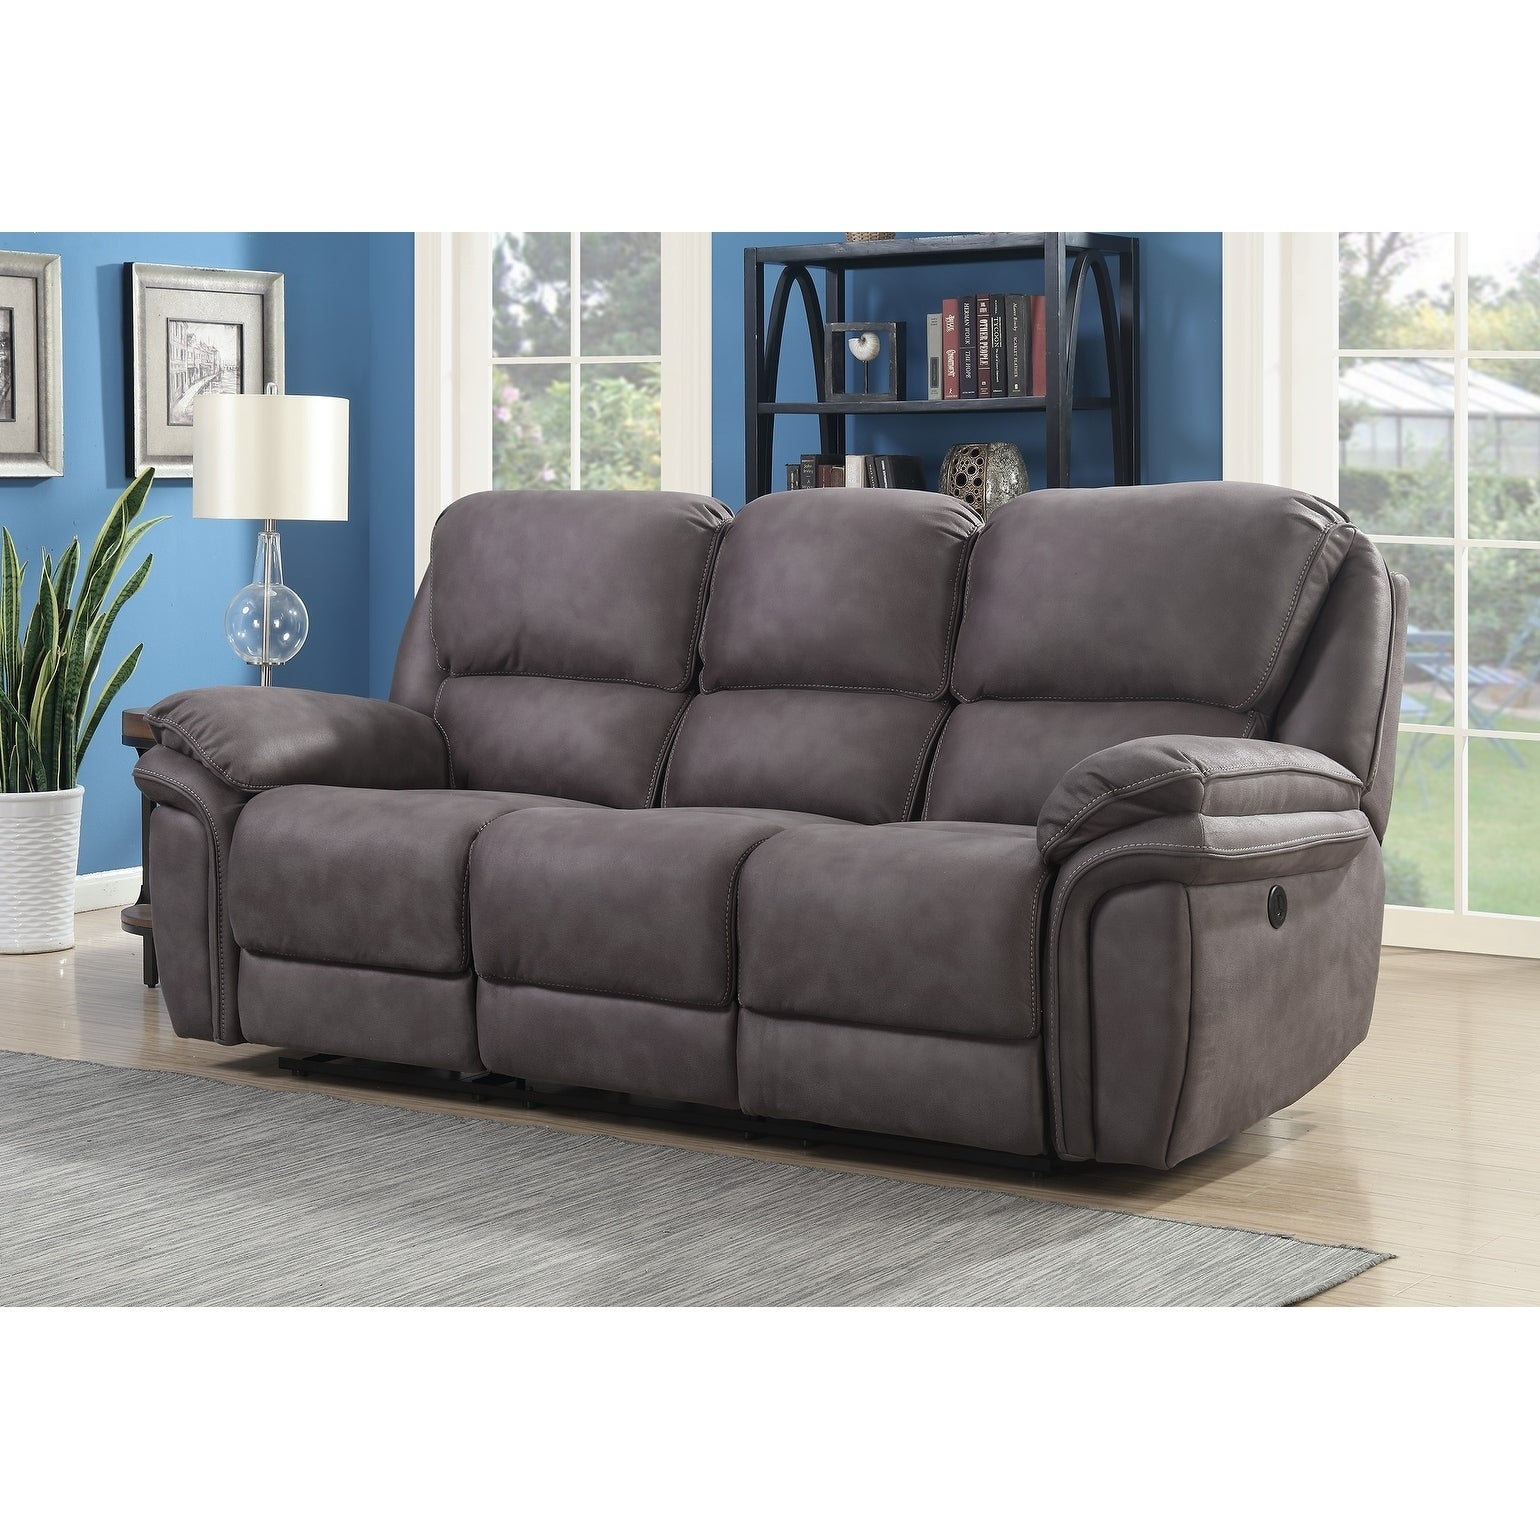 Henry Dual Power Reclining Sofa With Memory Foam Seat Toppers And